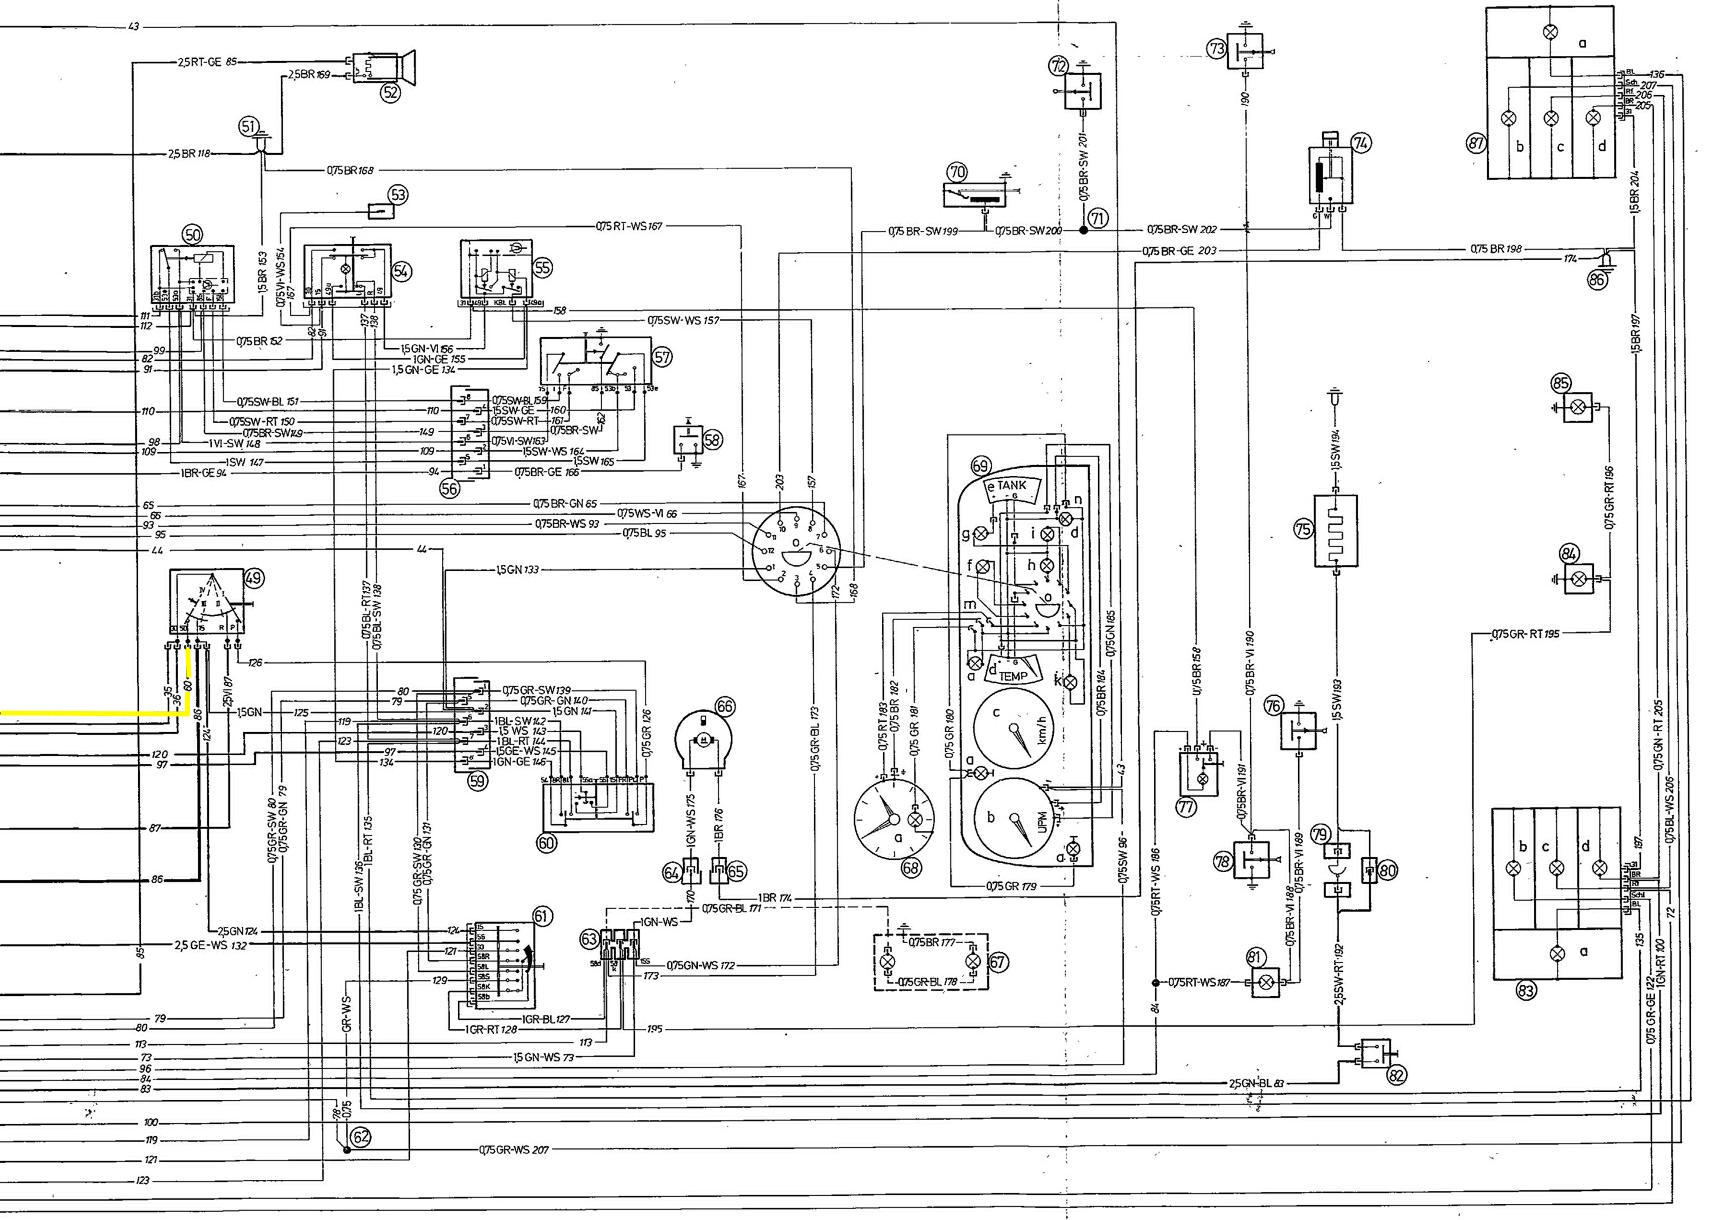 Is The Starter Relay Really A Starter Relay Bmw 2002 And Other 02 Bmw 2002 Faq